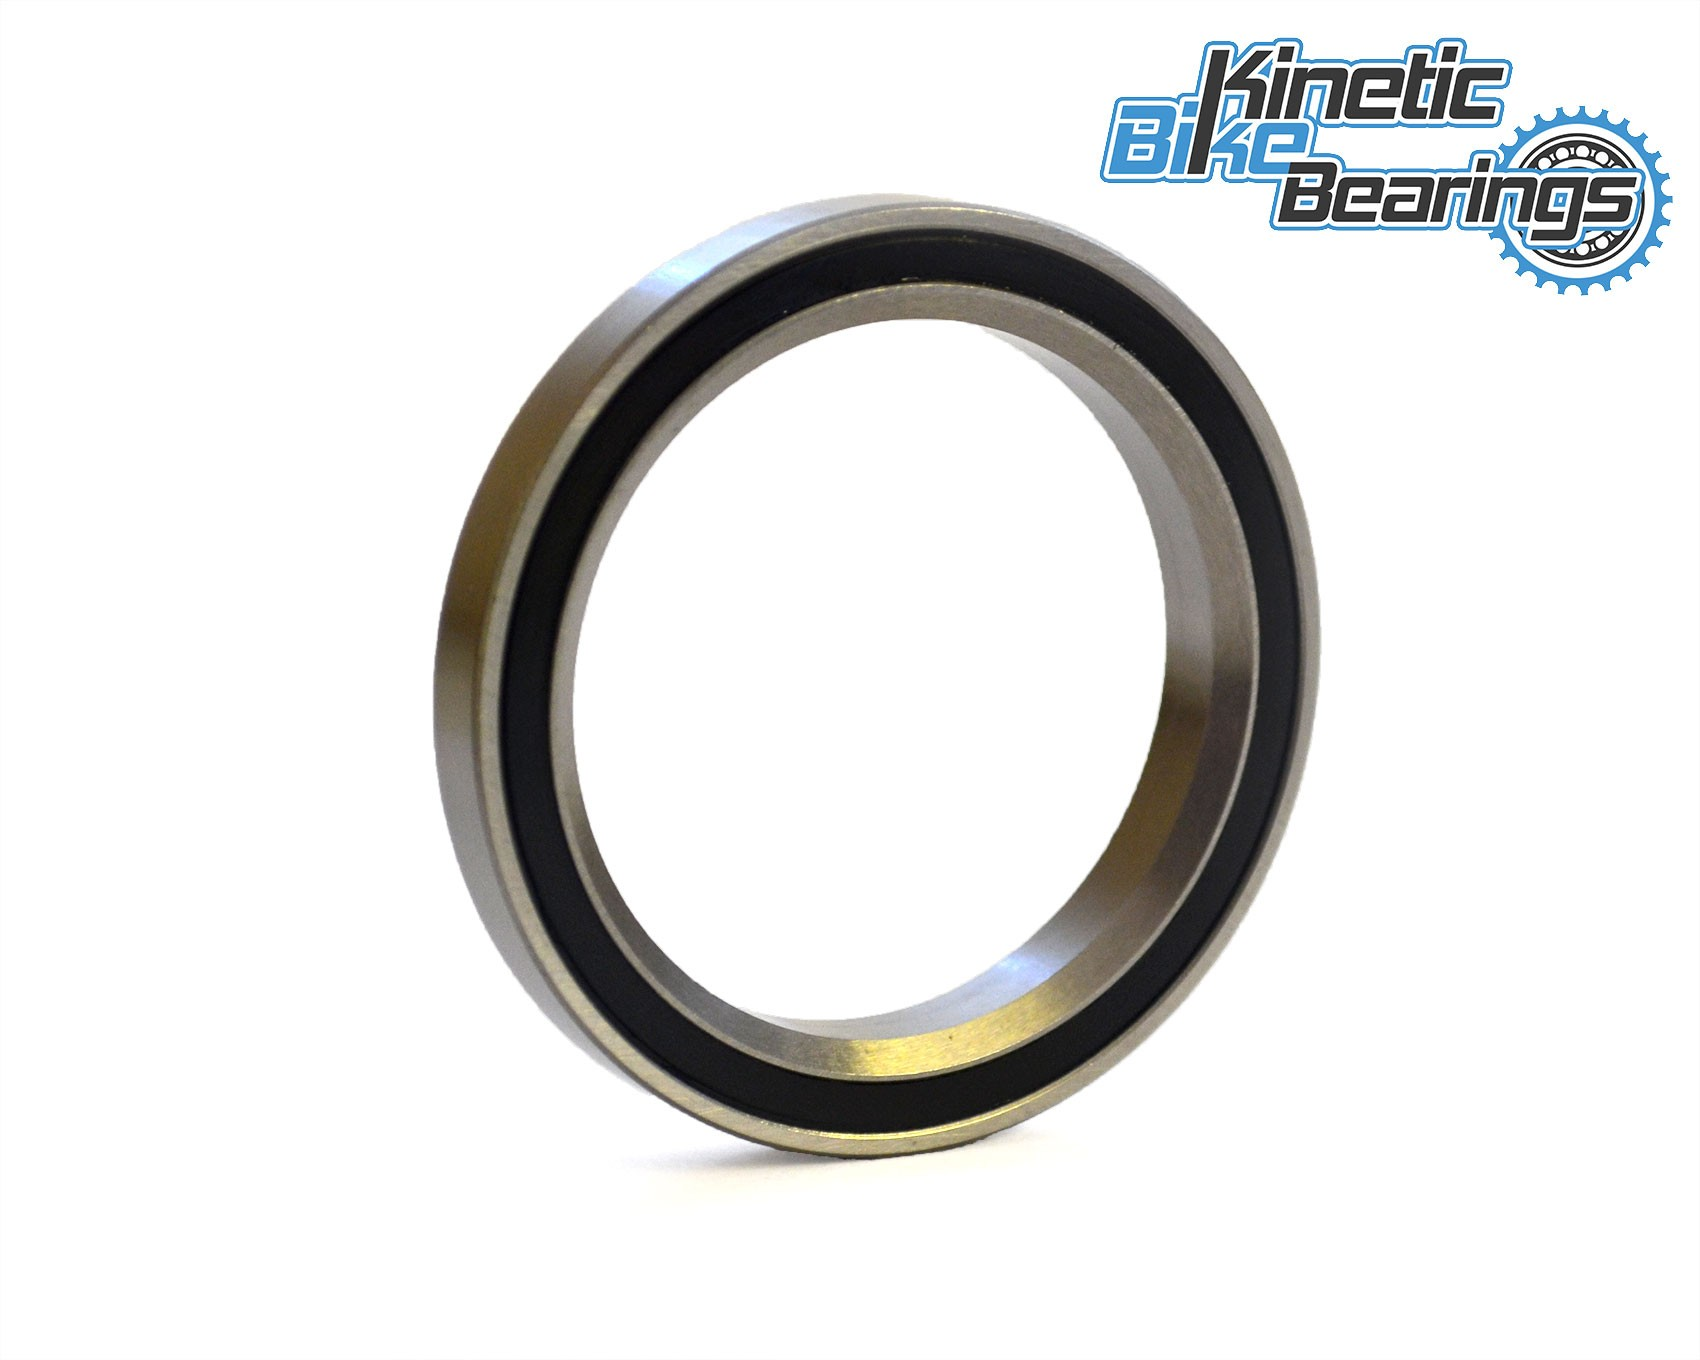 MH-P21 45/45 HSET BEARING KINETIC